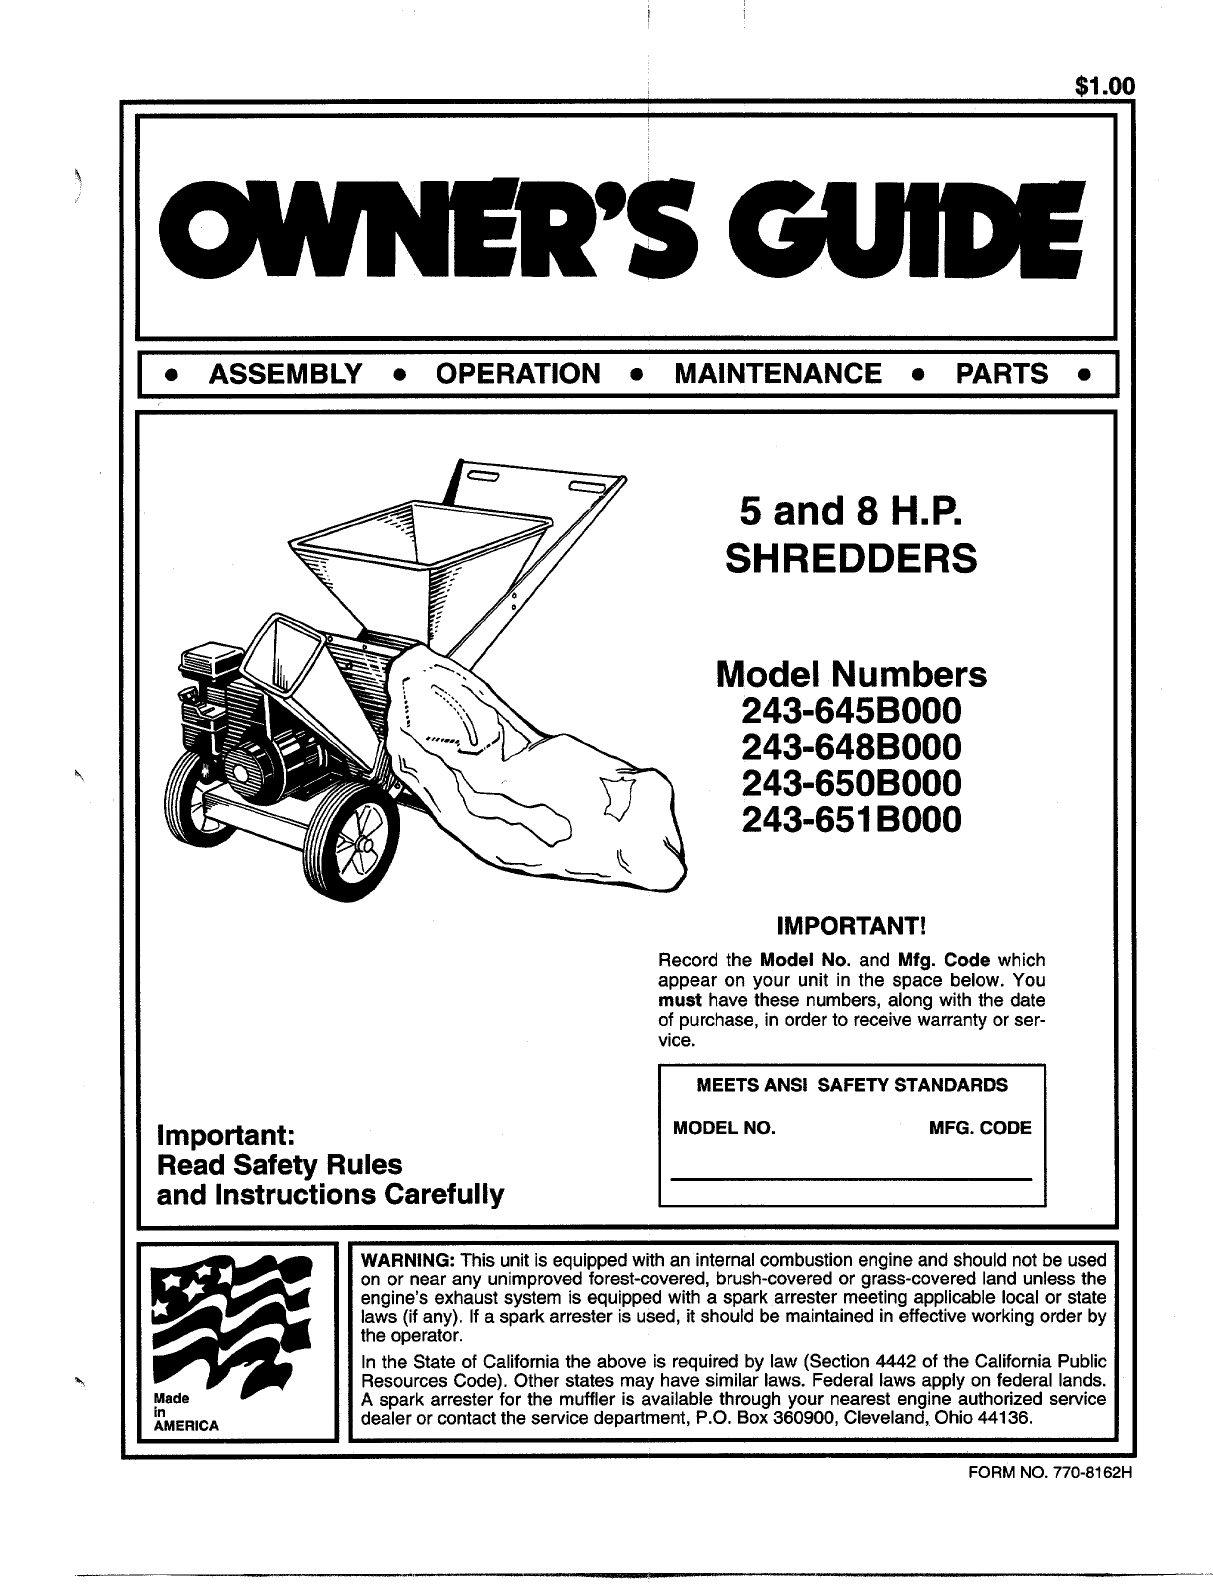 mtd chipper 243 645b000 user guide manualsonline com sears lawn tractor owners manual online sears lawn tractor owner's manual